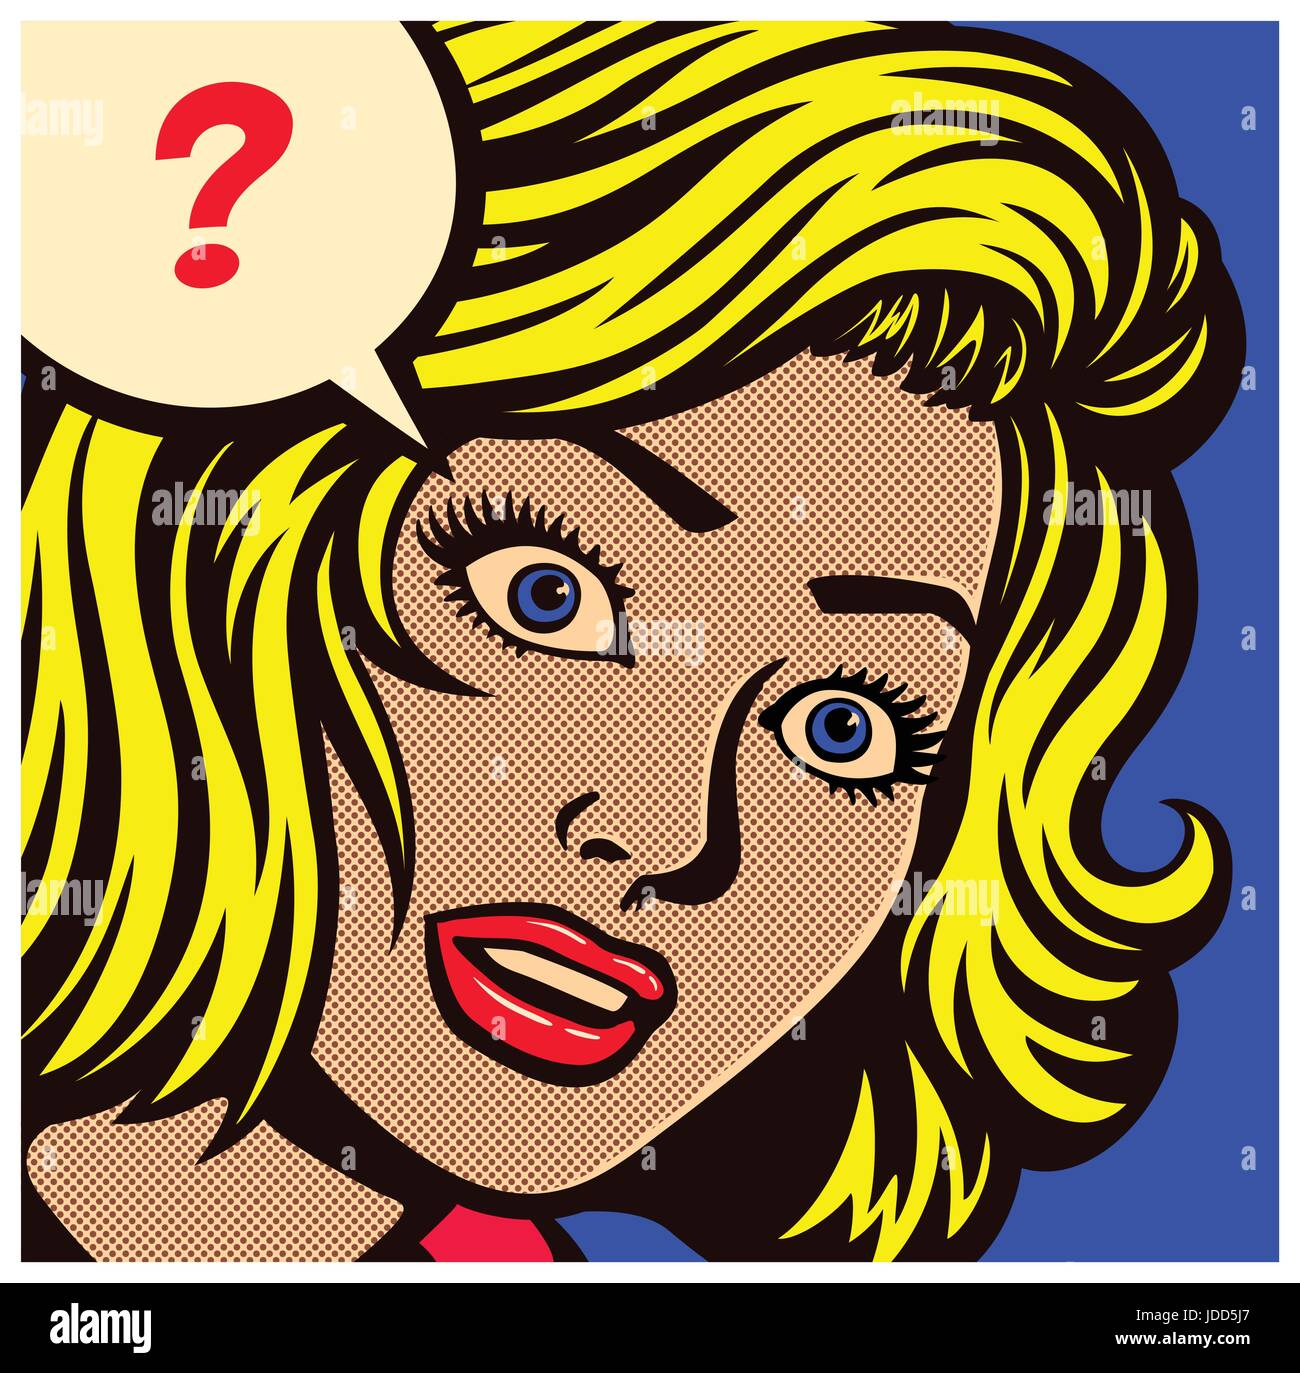 Pop art style comic book panel with confused, puzzled or perplexed woman and speech bubble with question mark vector - Stock Image